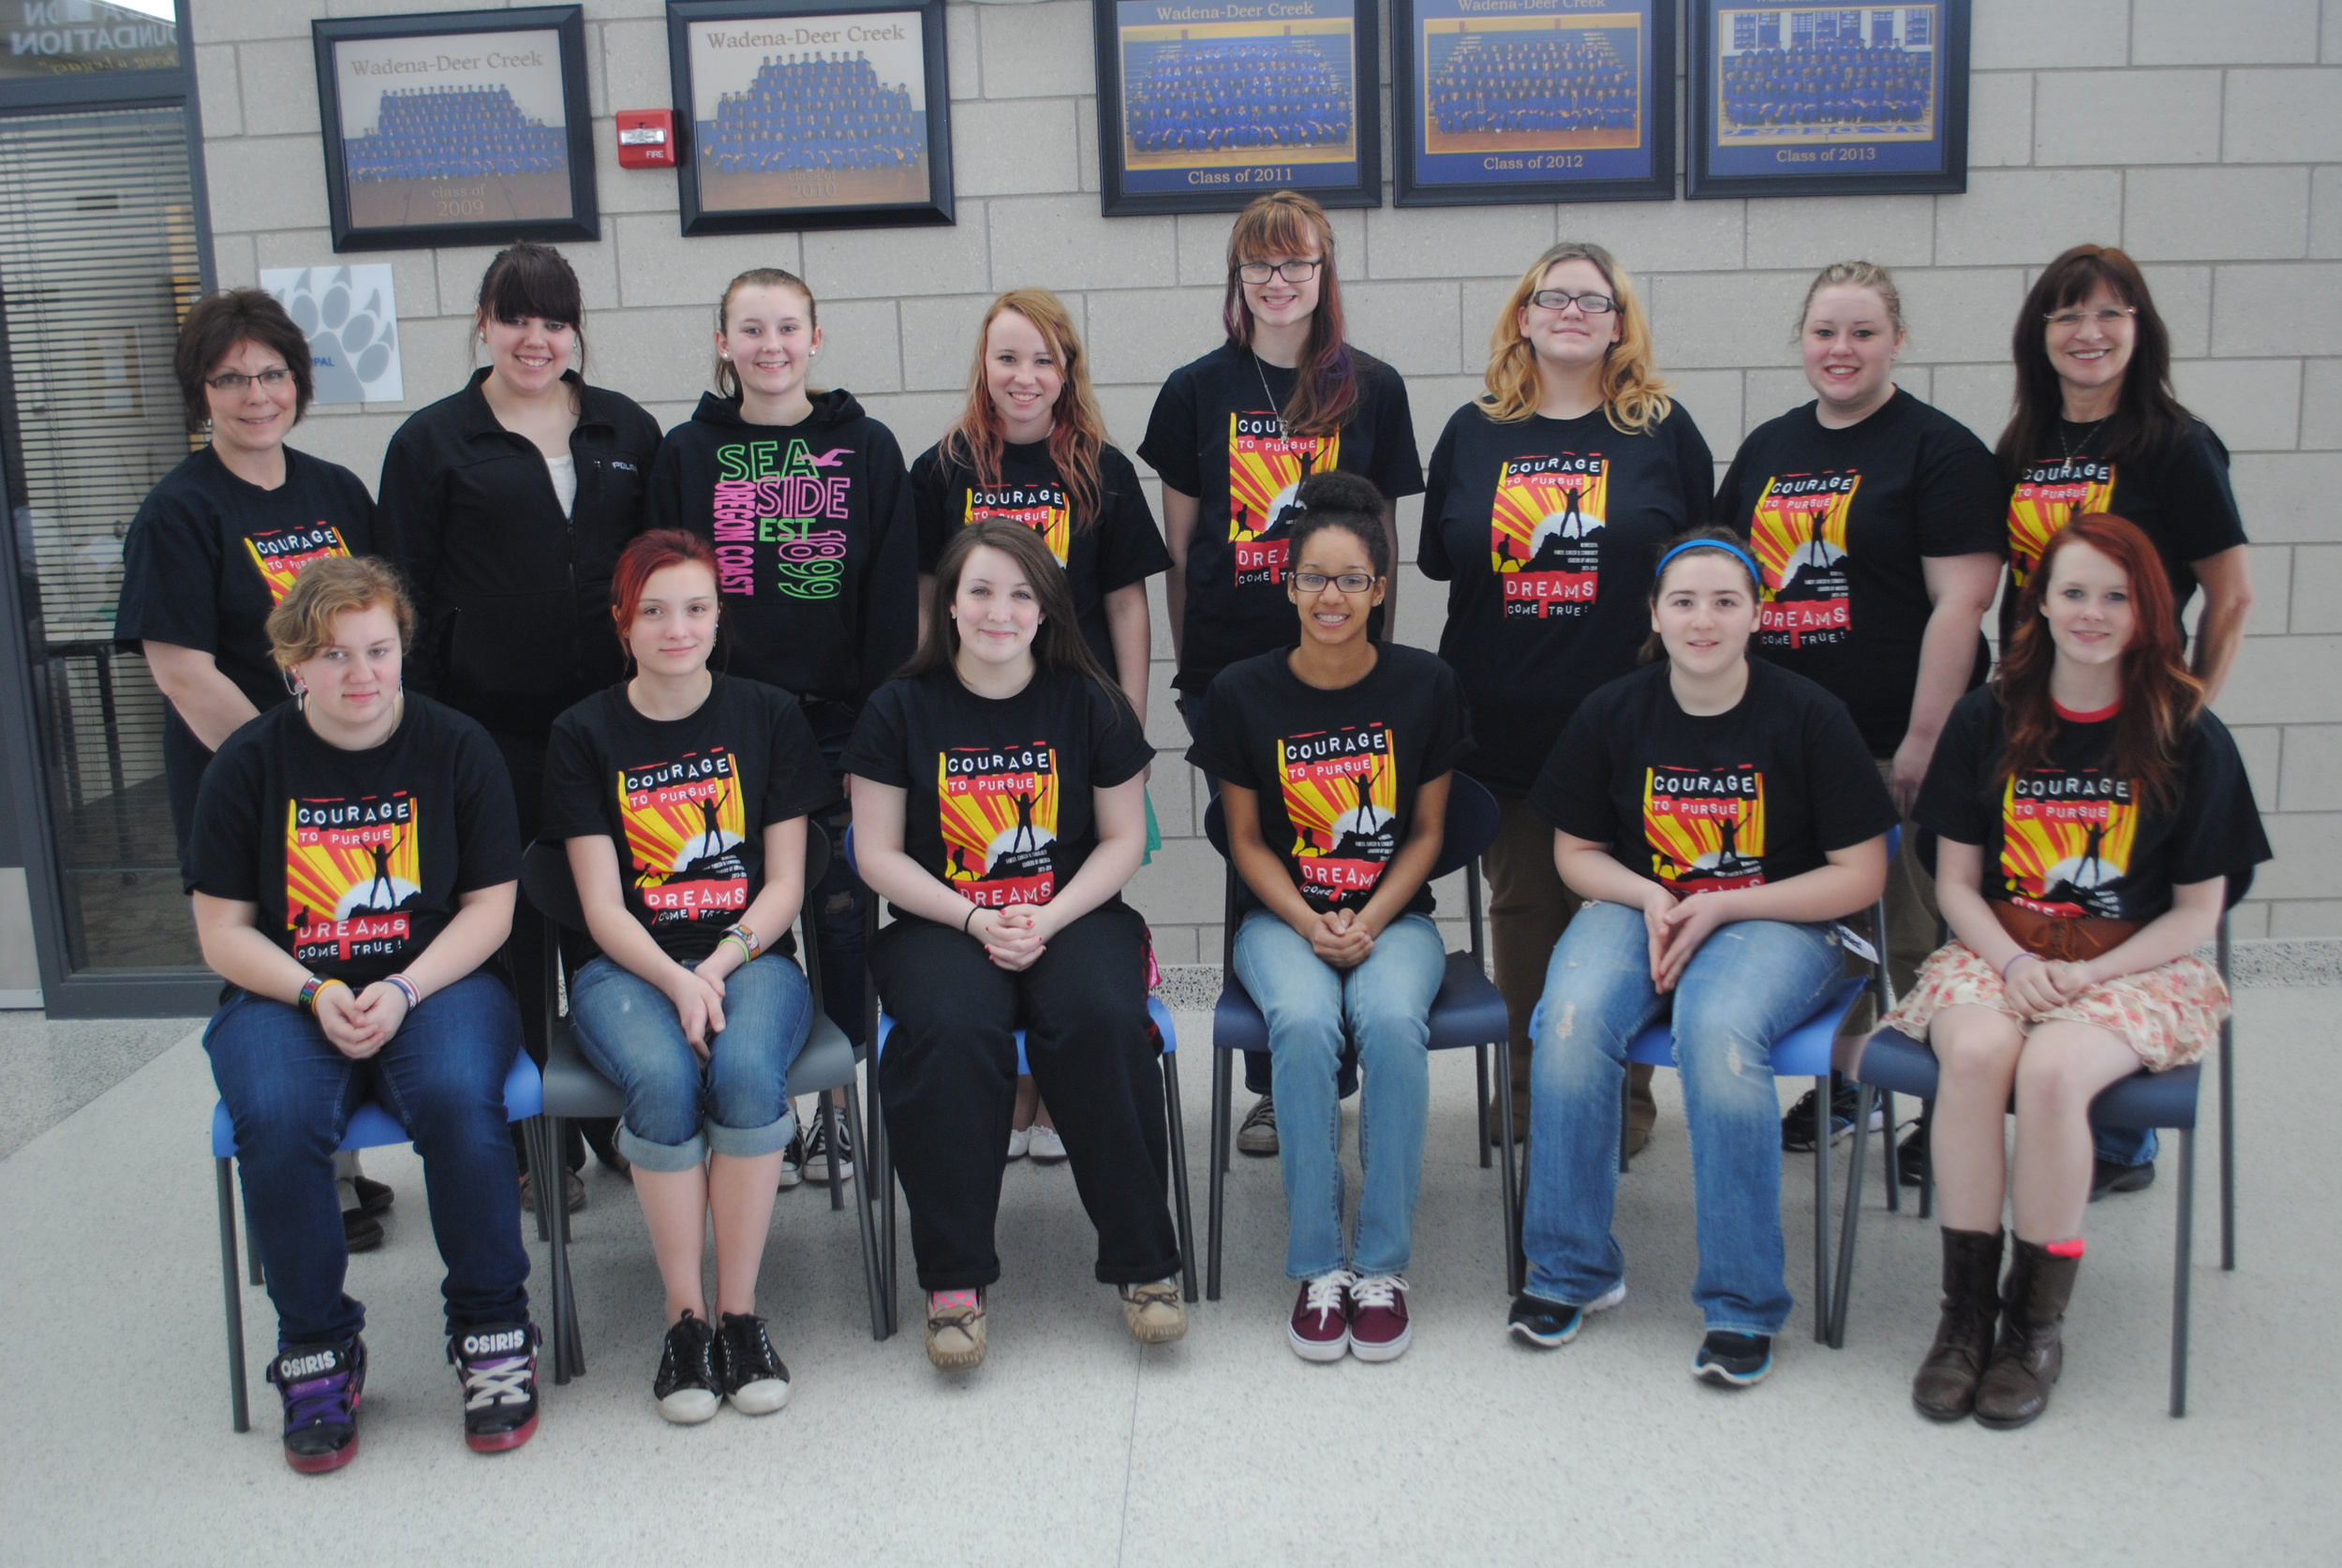 Wadena-Deer Creek FCCLA members who attended the State Conference in Bloomington last week, were (front row, from left):  Hayley Maloney, Raine Curtis, Hope Norenberg, Kayla Hanson, Lyndsay Frisch and Kayla Peterson; back row, from left: Sheila Winkels, advisor; Angela Torkkola, Jessica Langer, Anissa Mench, Kendra Curtis, Divina Turley, Shania Lannes and Cindi Koll, advisor. Missing: Caitlin Savage. (Photo by Dana Pavek, WDC Schools)